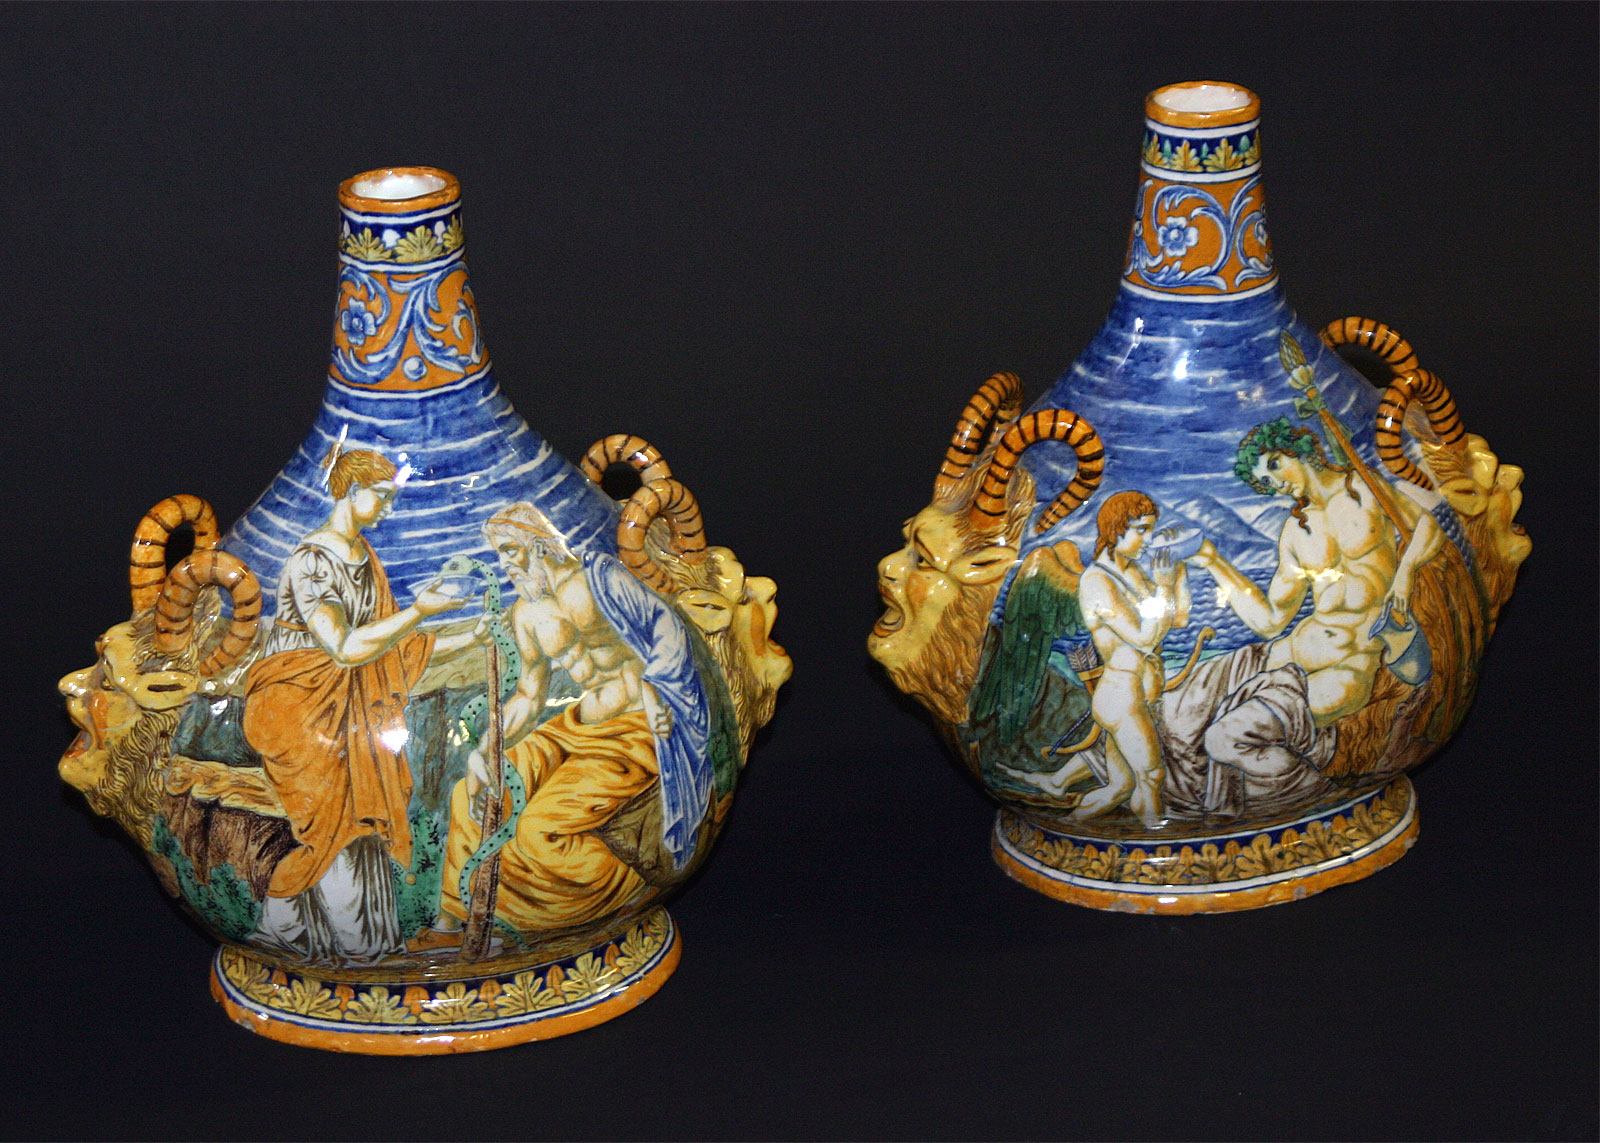 Pair of fine italian majolica bottle neck vases for sale with satyr masks each hand painted with scenes of neoclassical figures mid 19th century reviewsmspy